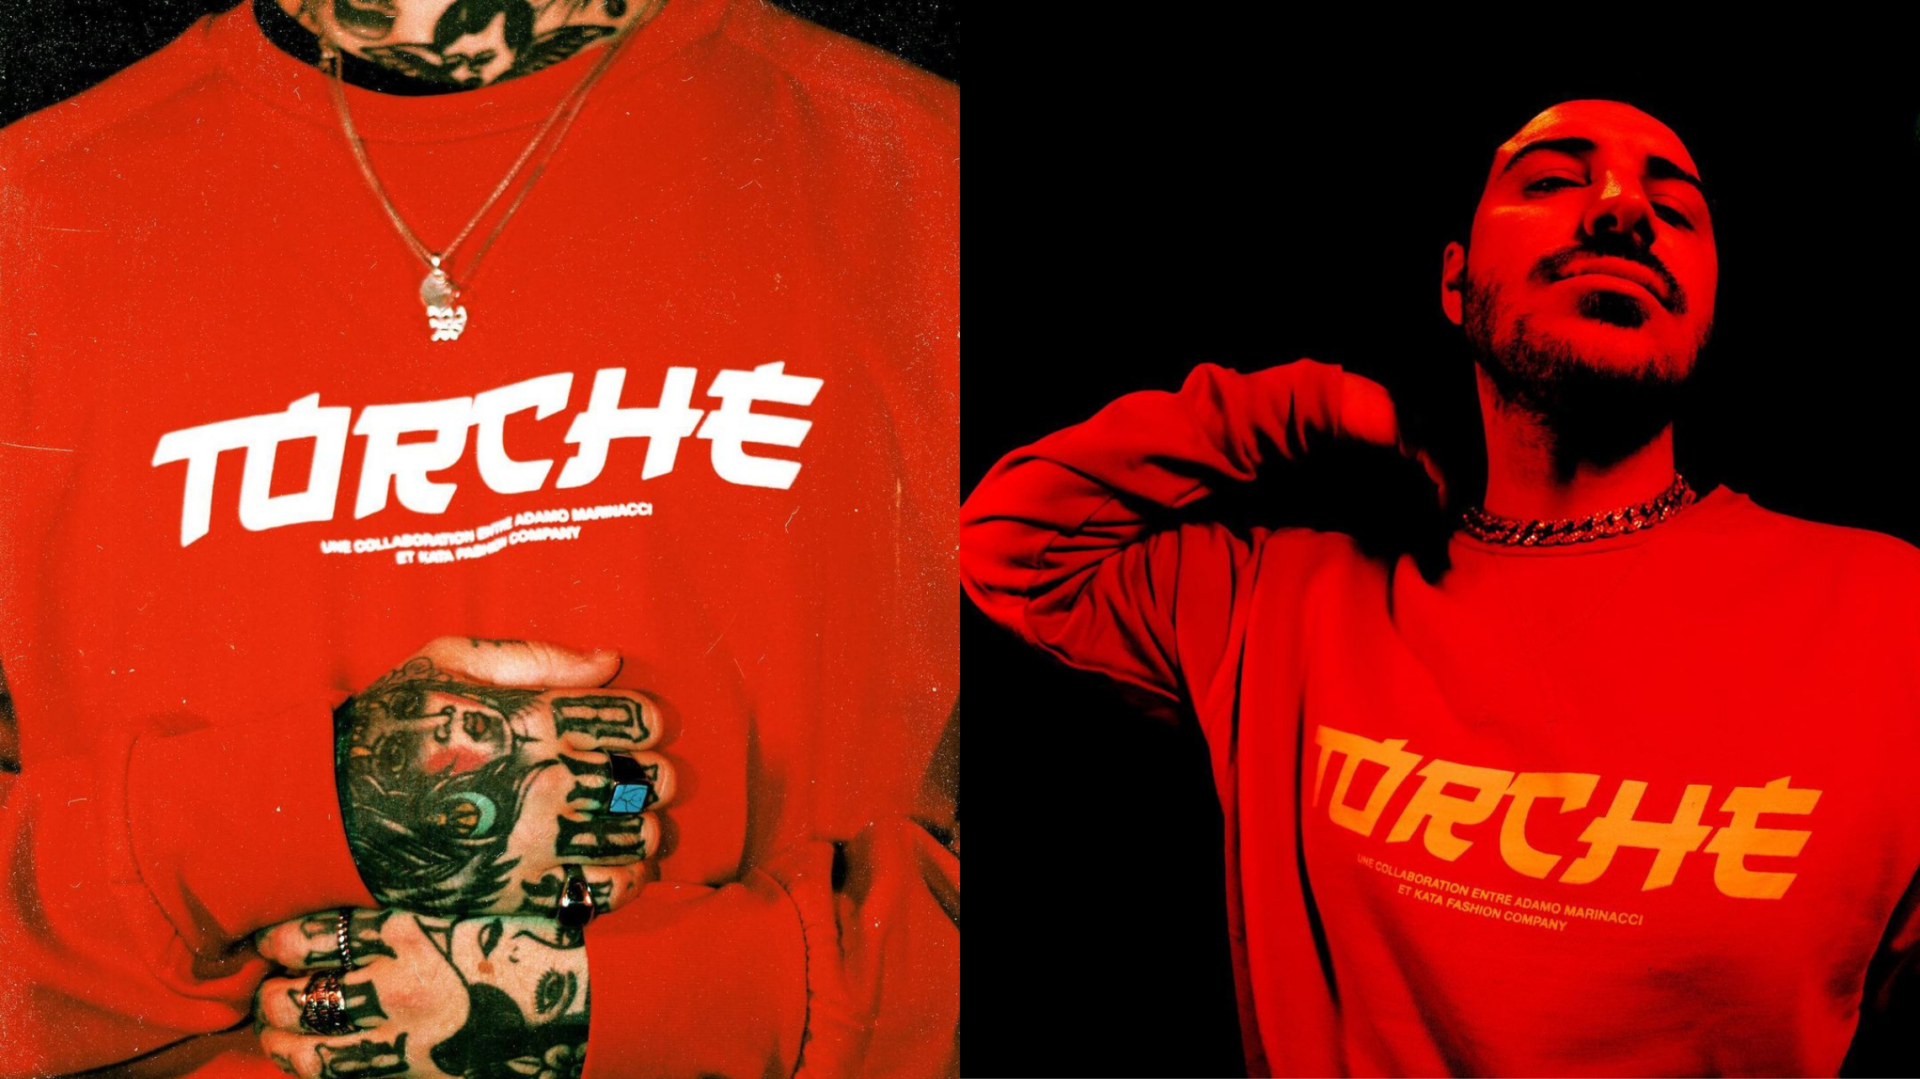 KATA Fashion lance « Torché », une collaboration avec Adamo [PHOTOS]